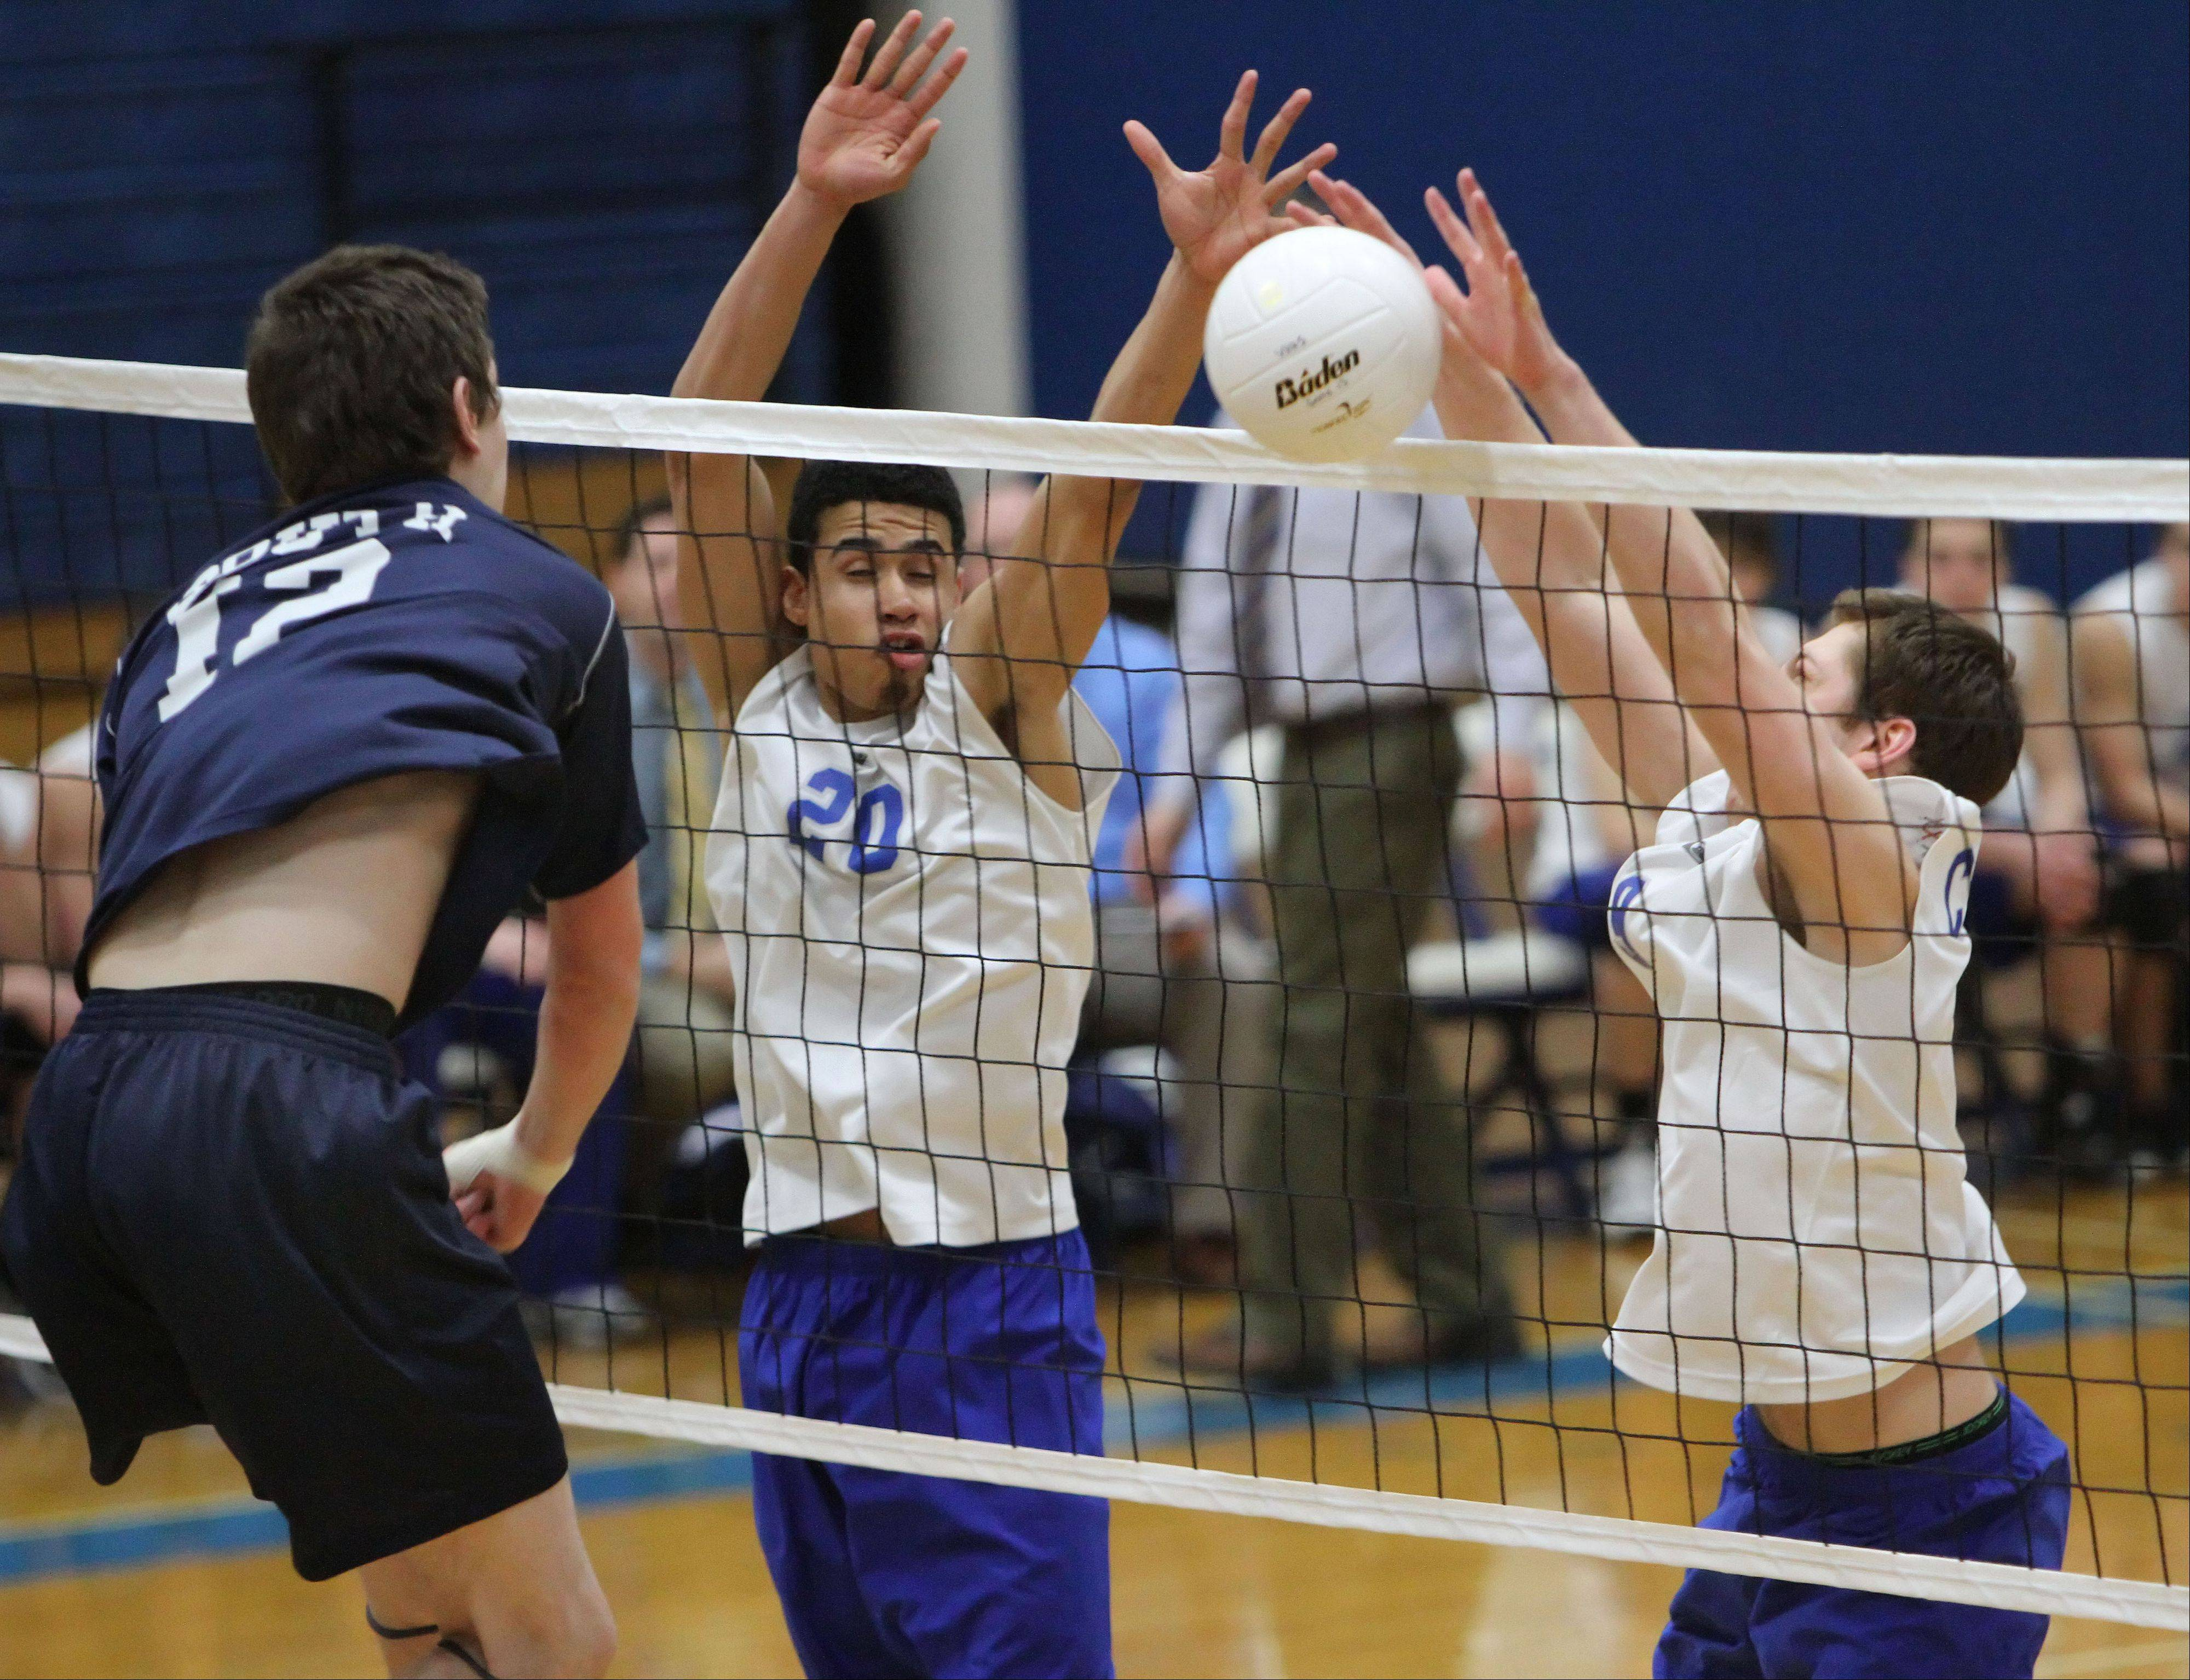 Vernon Hills' Lem Turner, left and Danny Rosenstock block the spike attempt by Glenbrook South's Anthony Lebryk during their game Wednesday night at Vernon Hills.